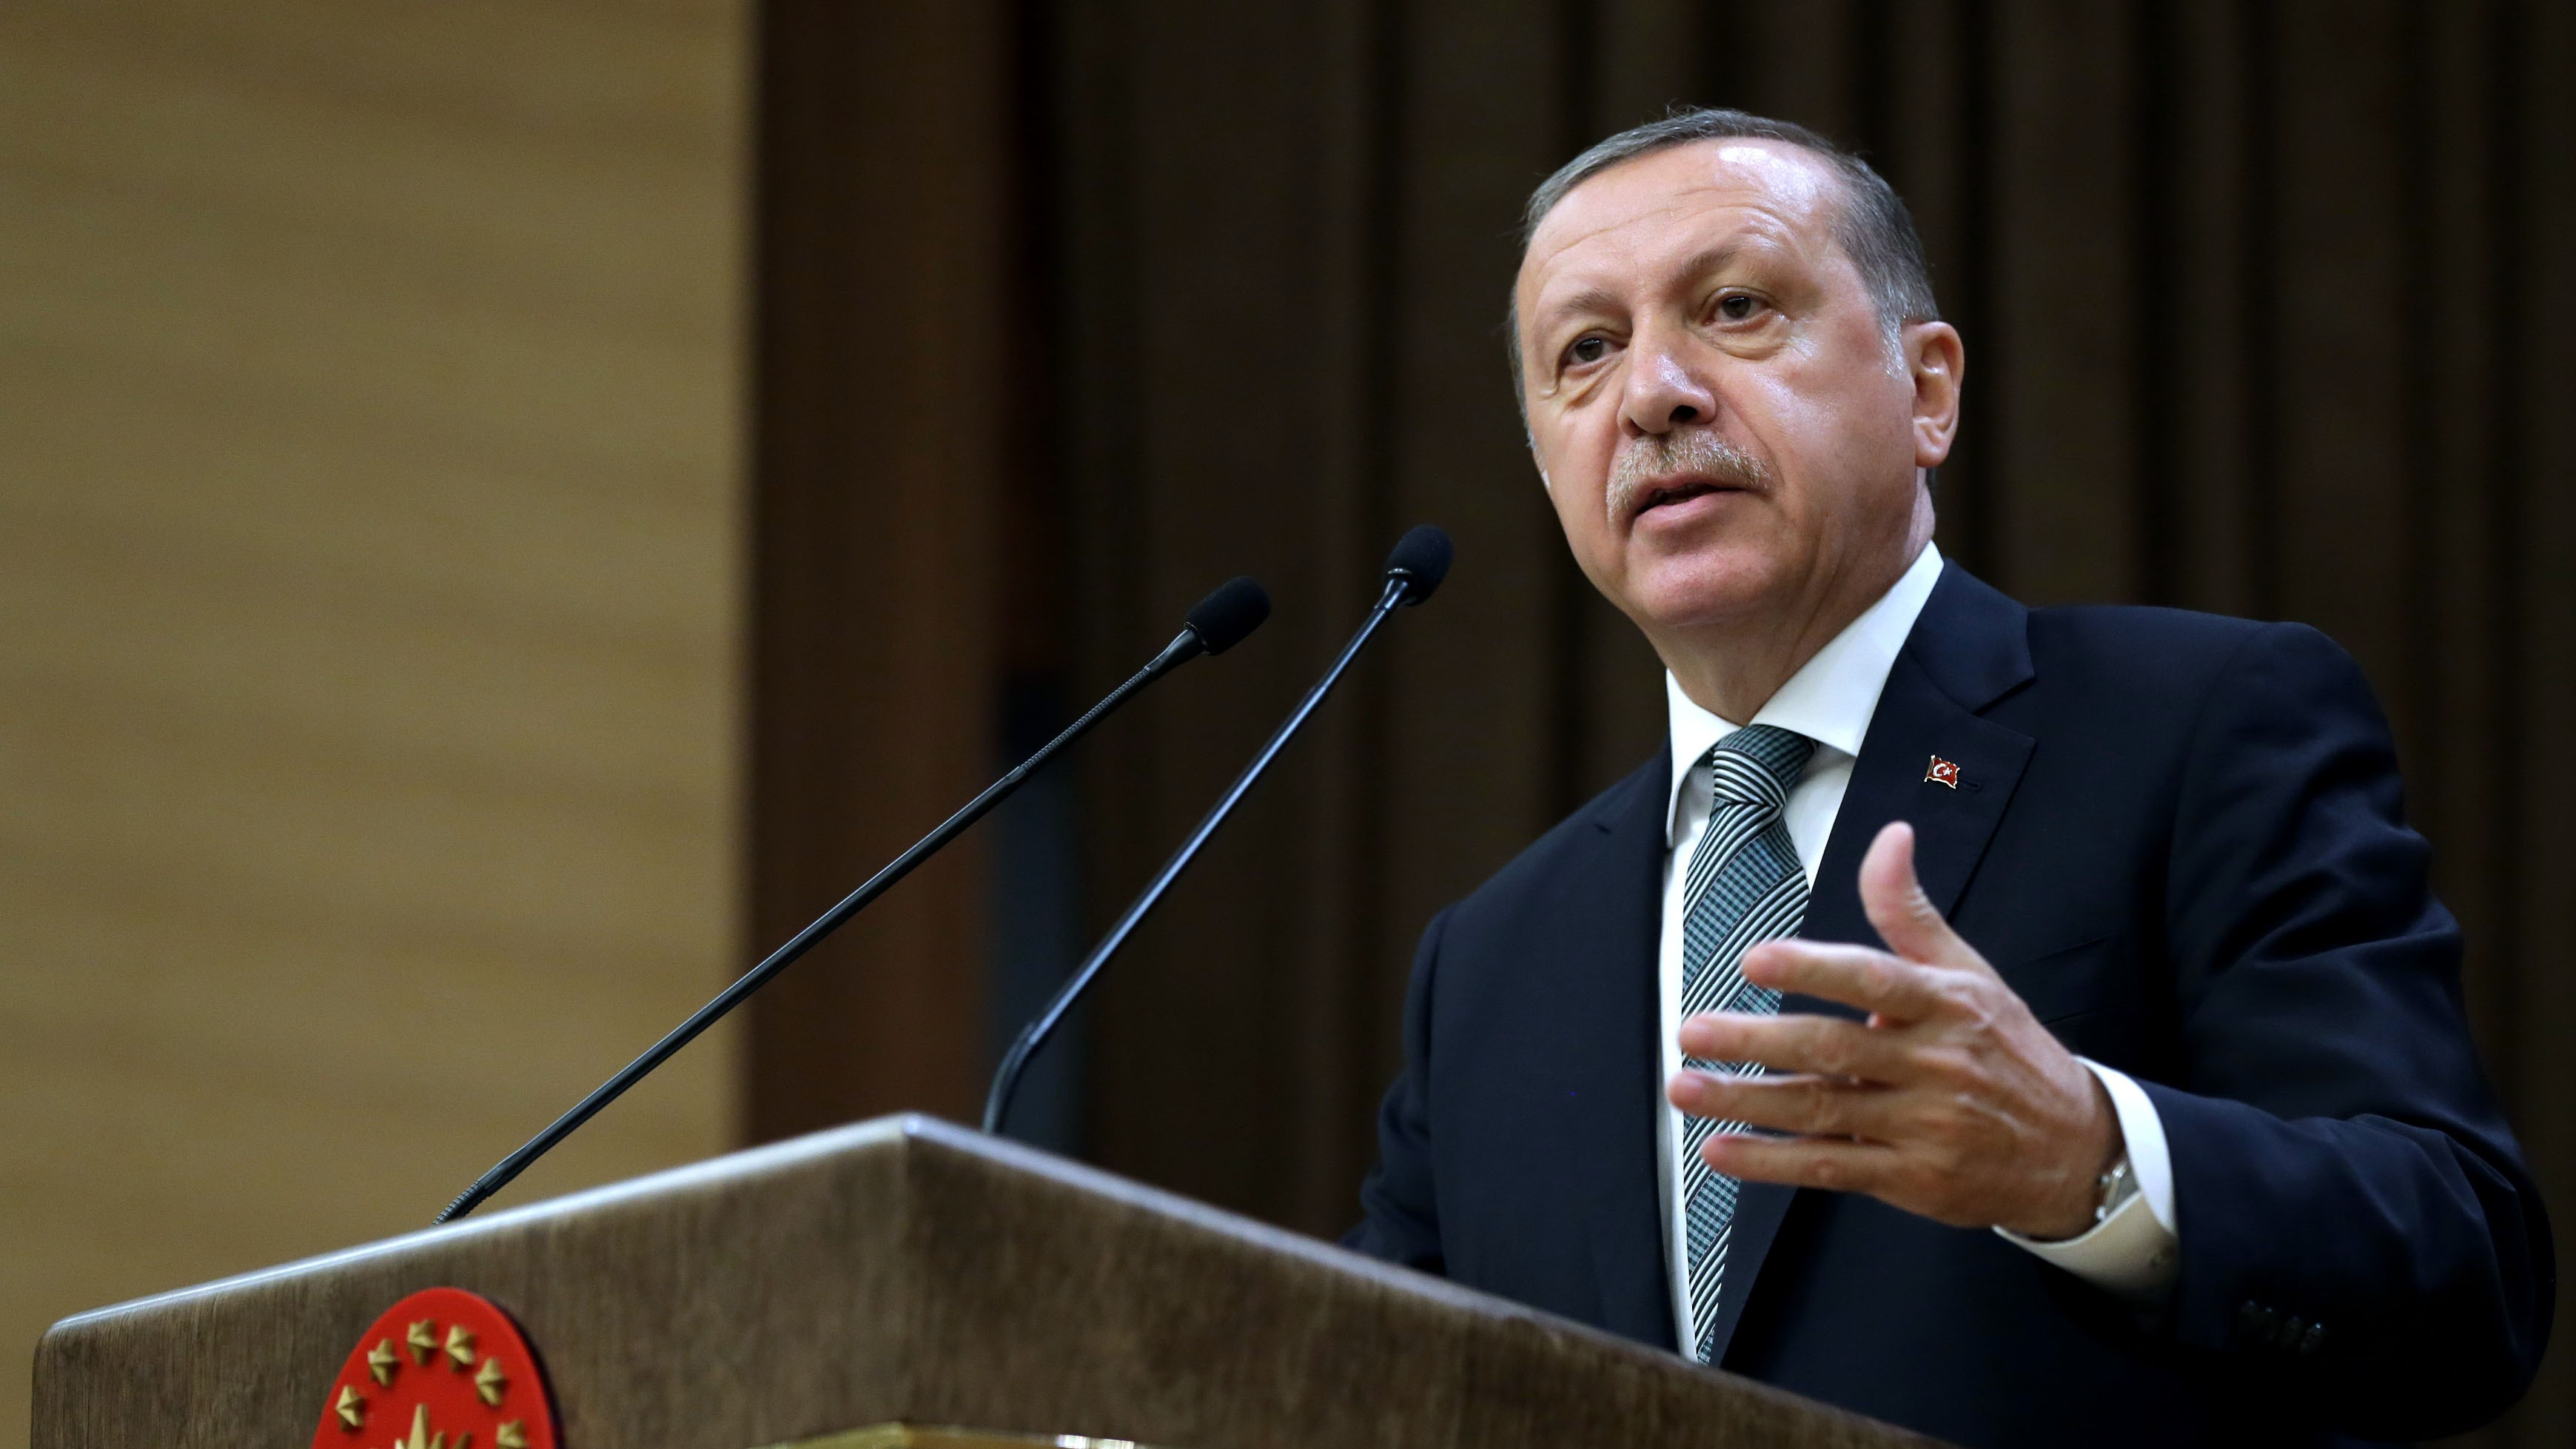 German Court Rejects Turkish President Erdogan's Attempt to Stop 'Wave of Insults'